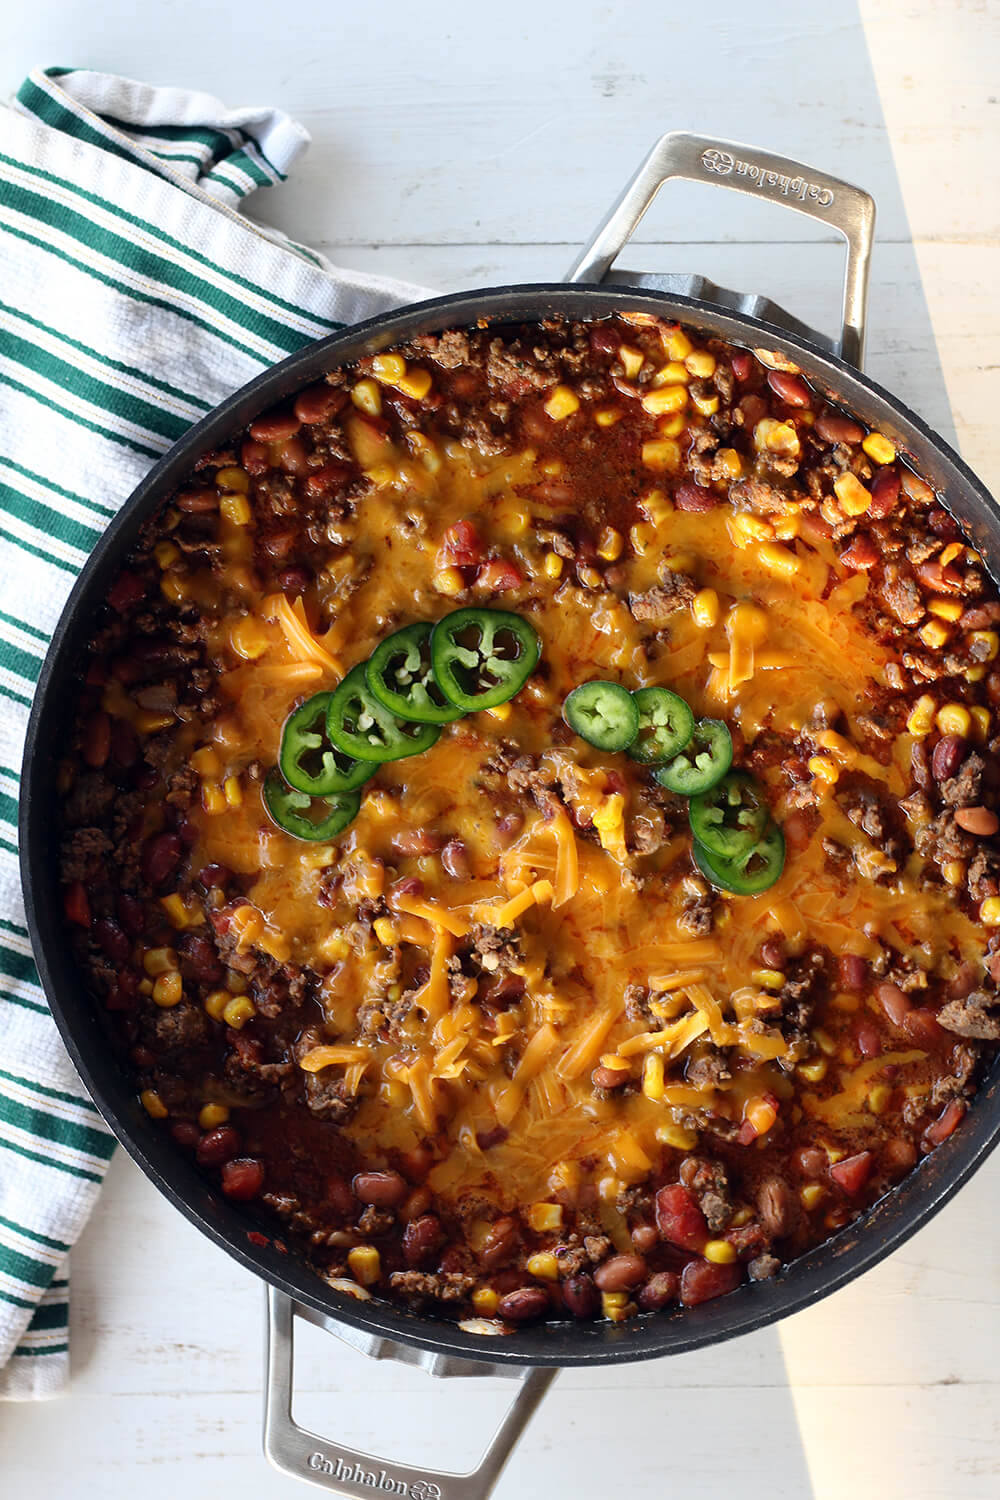 Taco style skillet dinner